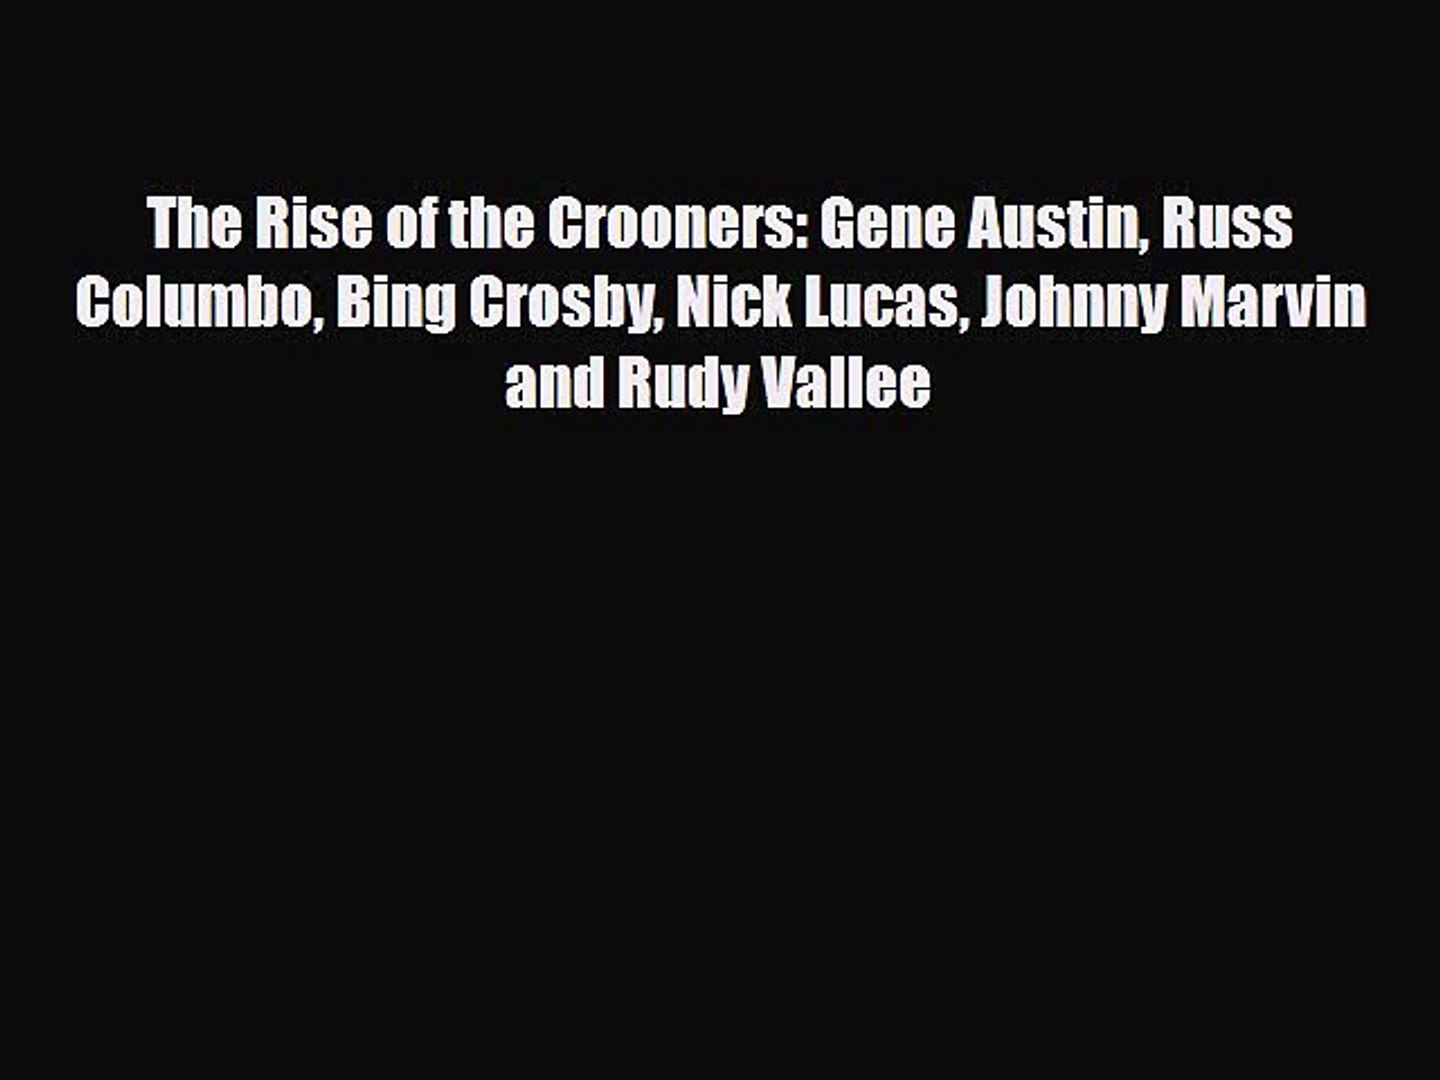 [PDF] The Rise of the Crooners: Gene Austin Russ Columbo Bing Crosby Nick Lucas Johnny Marvin